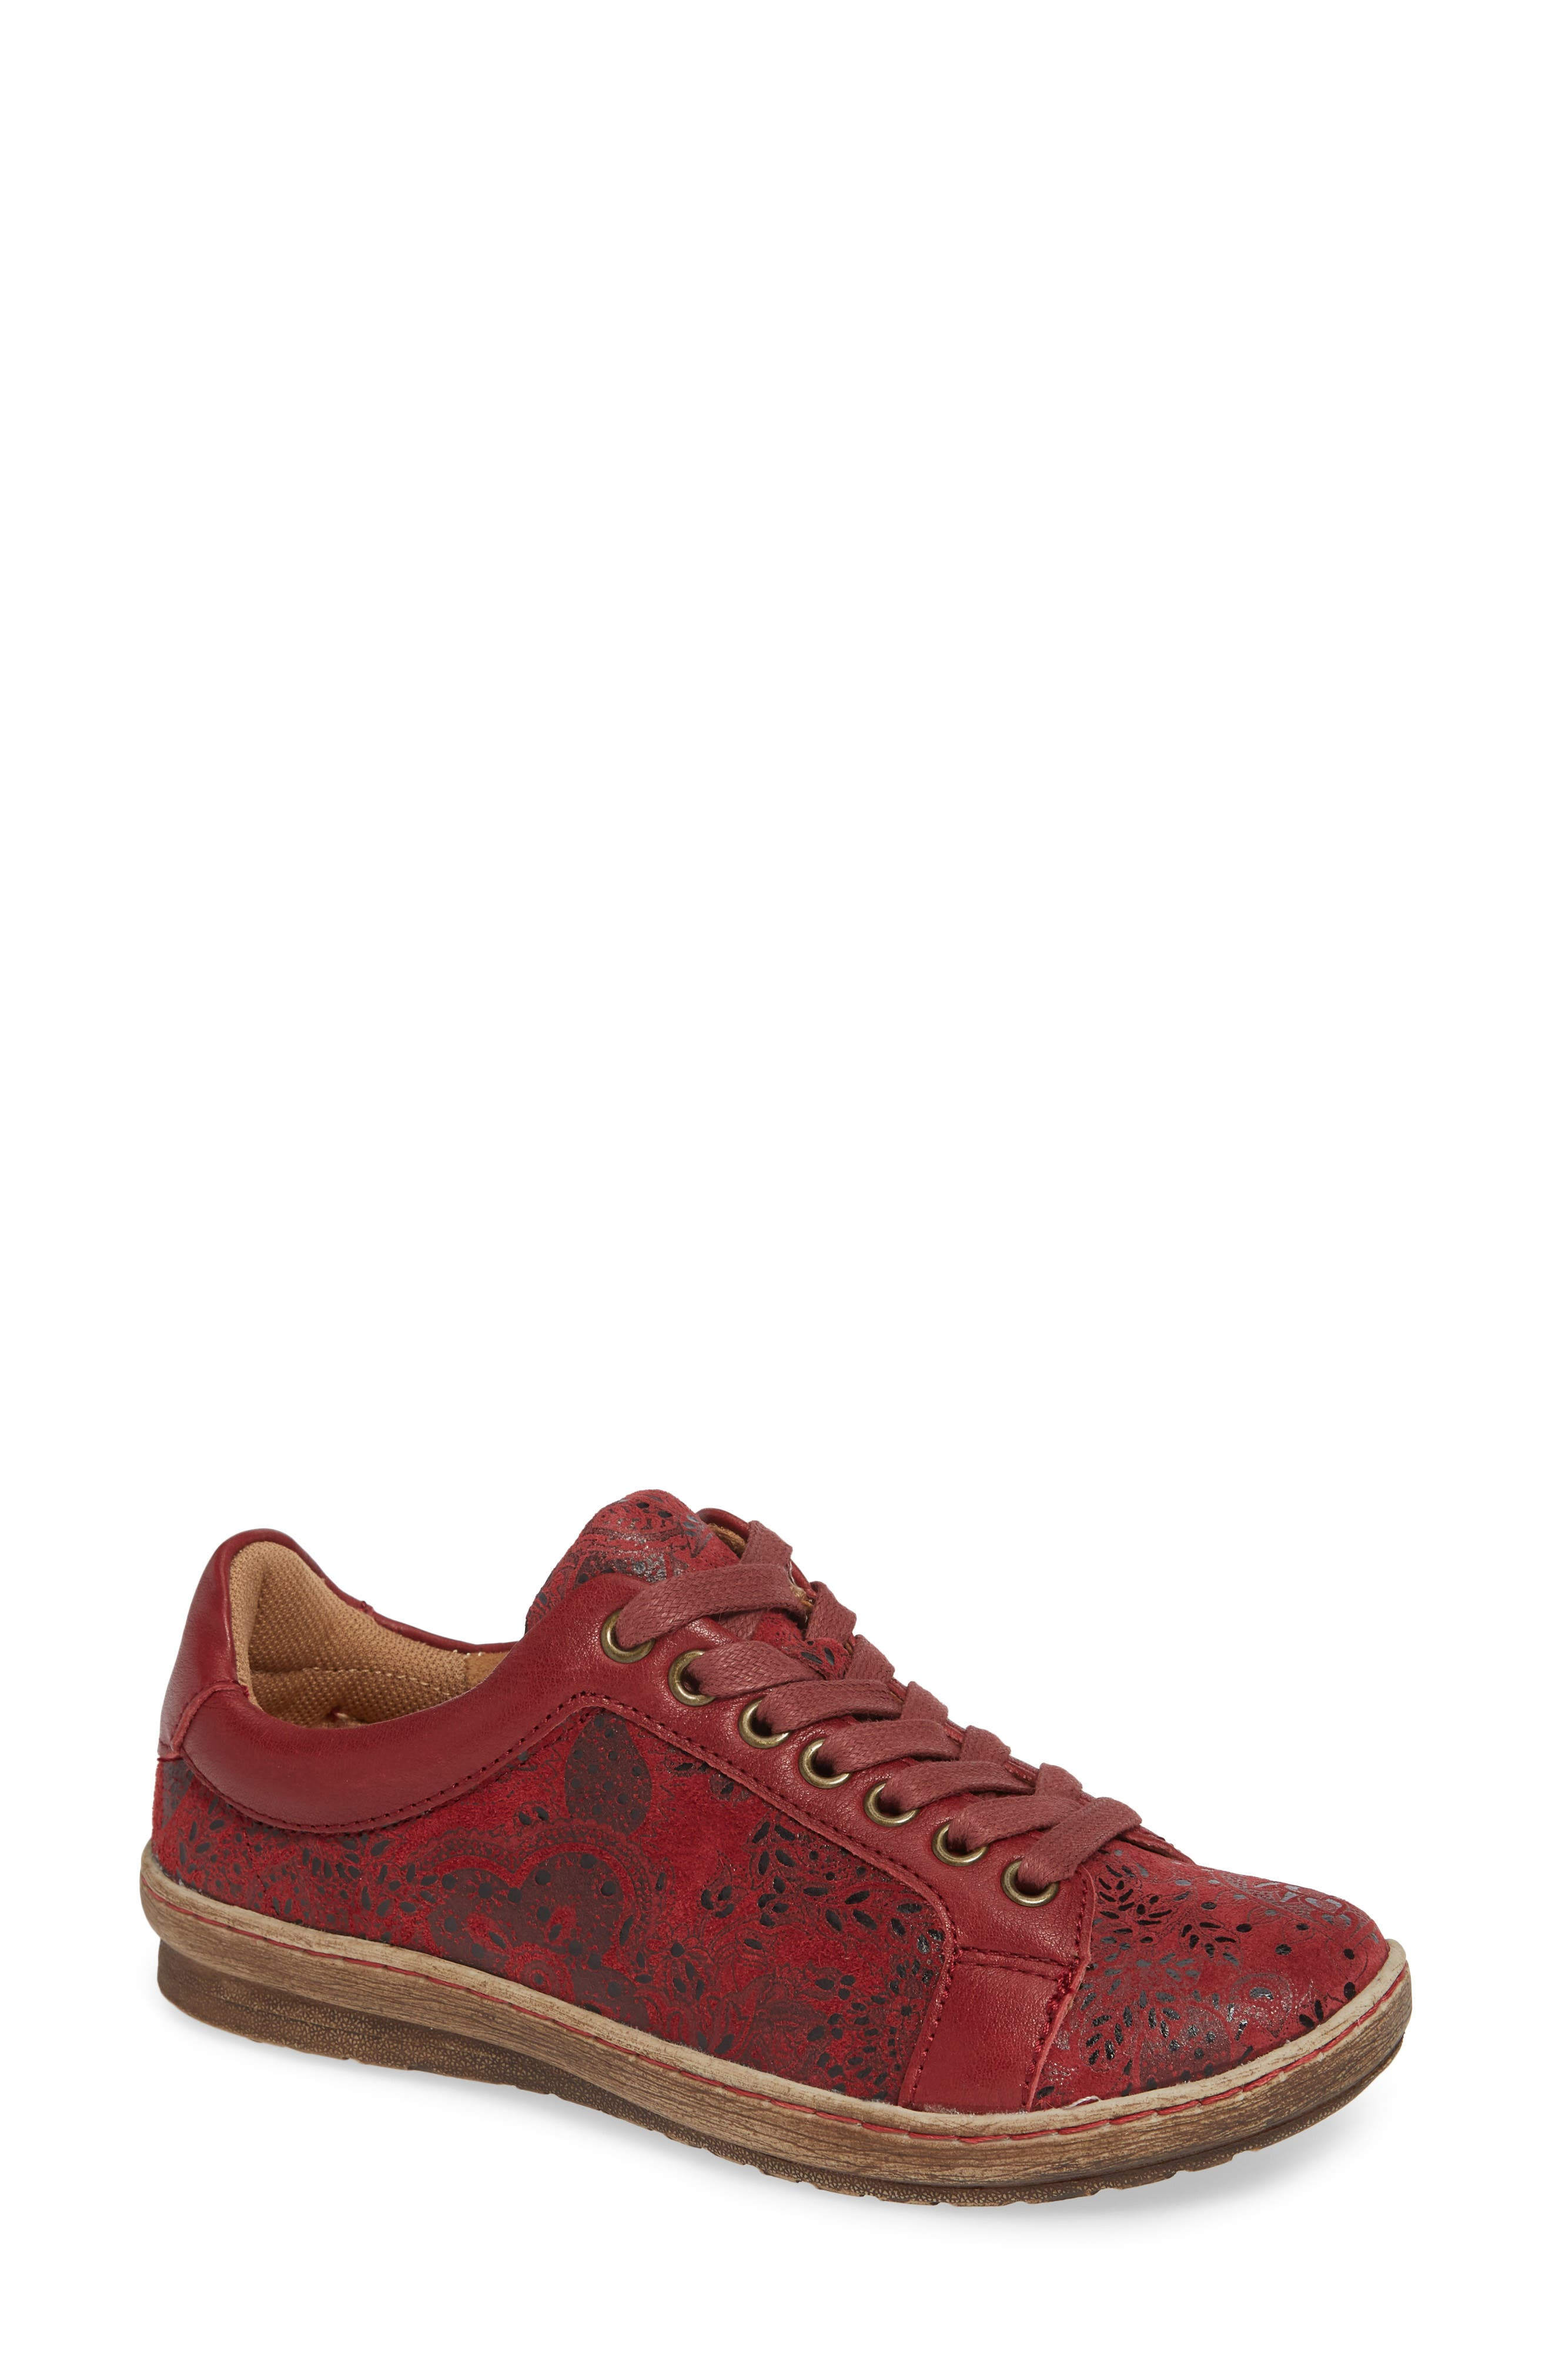 Comfortiva Caledonia Sneaker W - Red